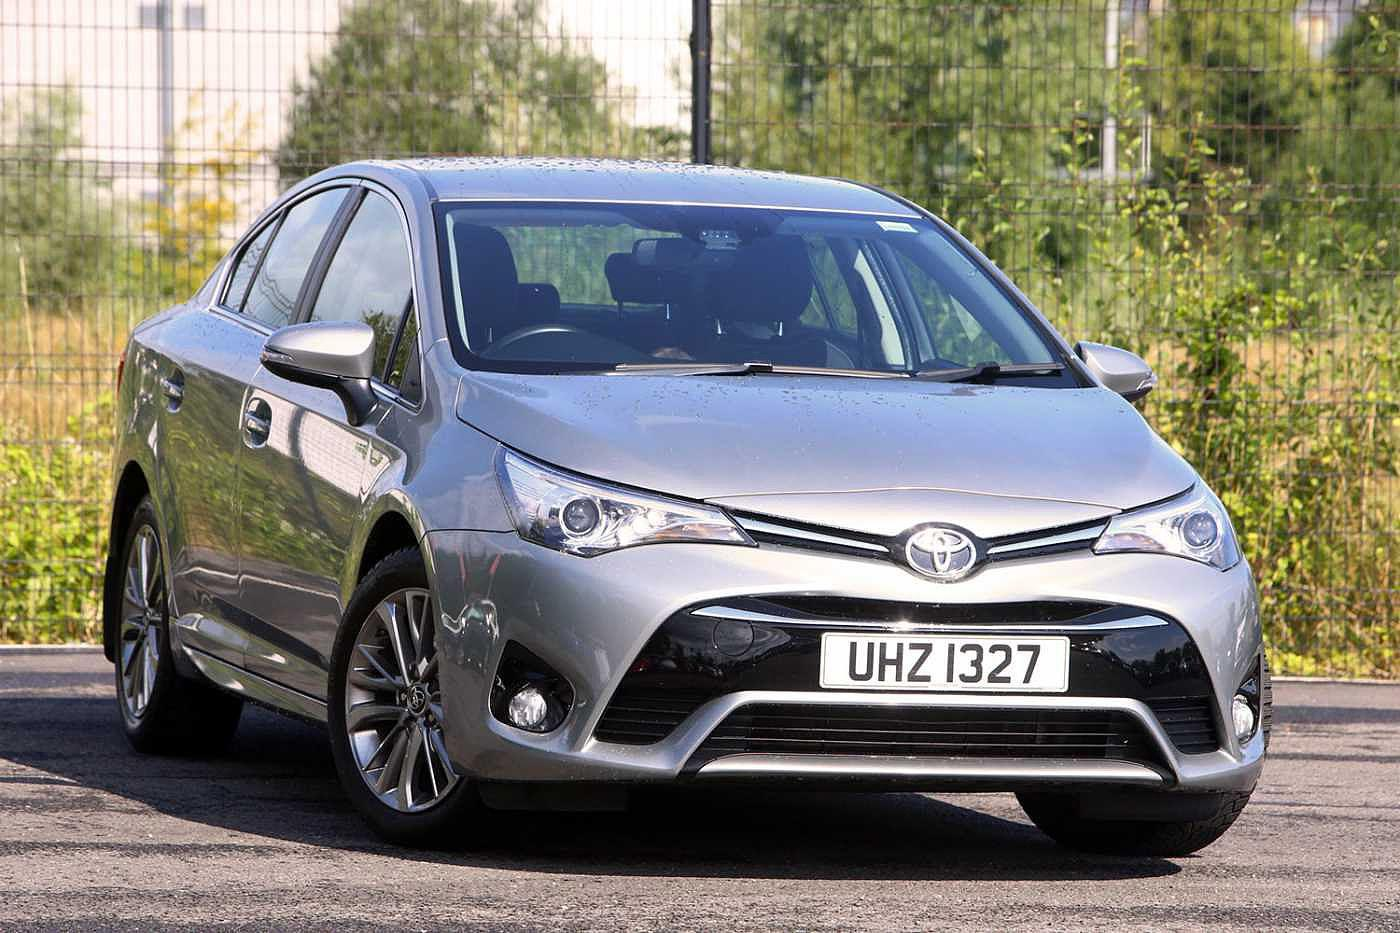 Toyota Avensis 1.6 D-4D Business Edition 4-Dr Saloon Diesel Grey